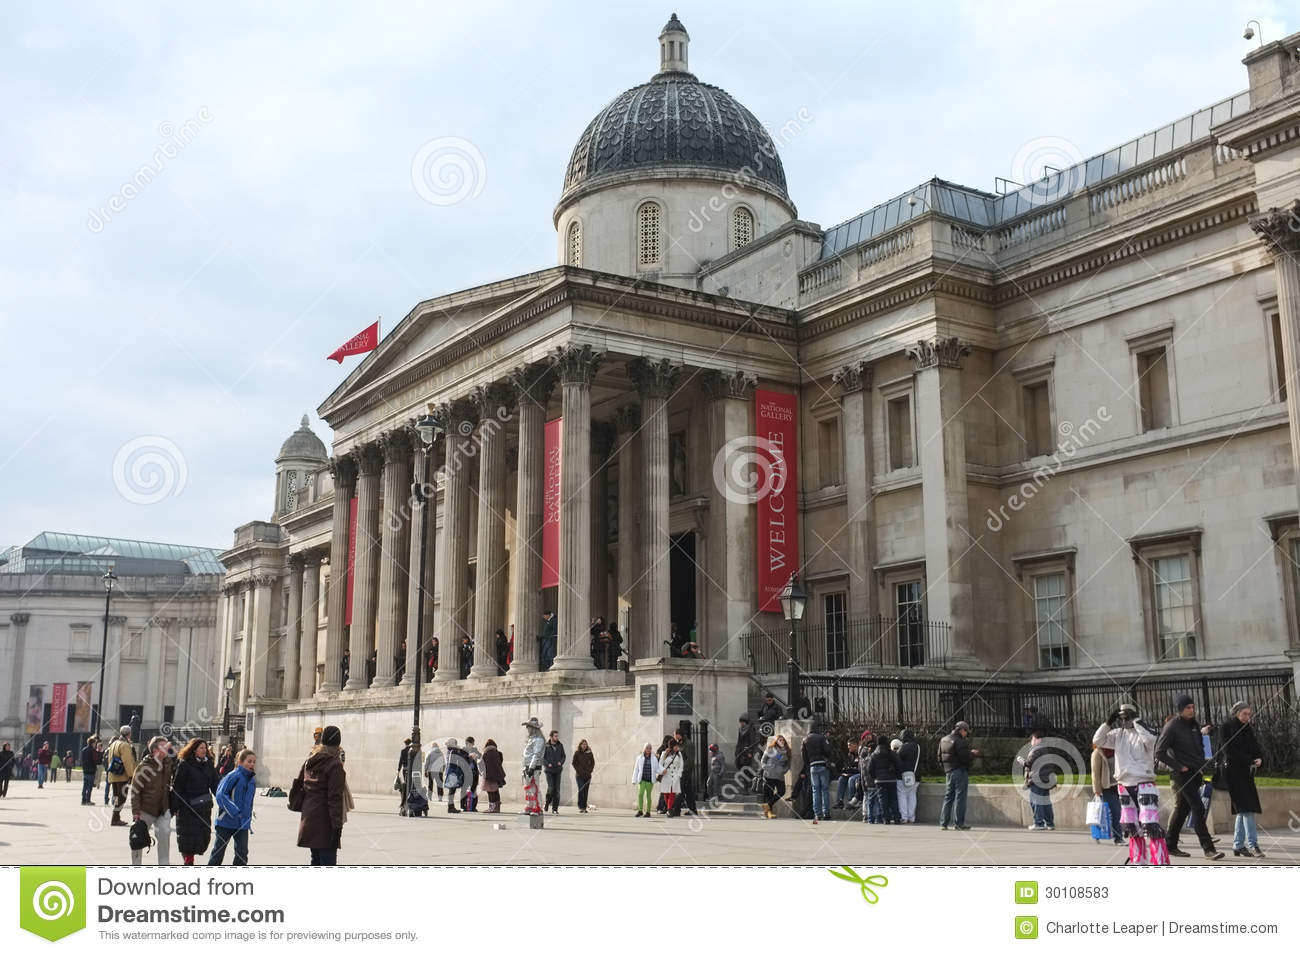 National Gallery London England Stock Photos, Images, & Pictures.